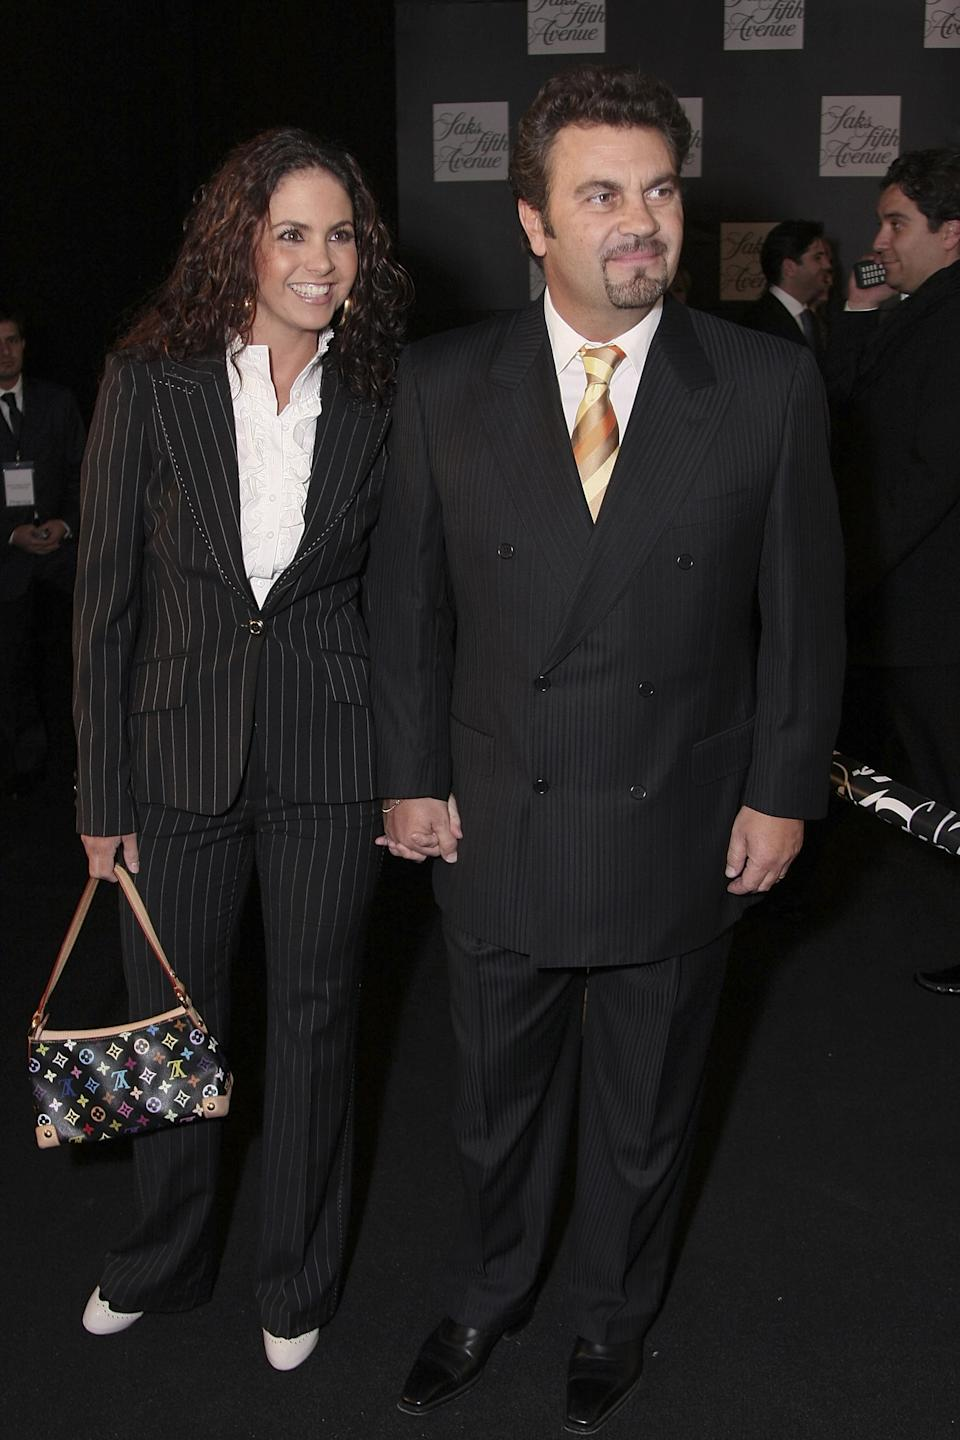 MEXICO CITY - NOVEMBER 27:  Singer Lucero and singer Mijares attend the opening of Saks Fifth Avenue Store November 27, 2007 in the Santa Fe district of Mexico City, Mexico.  (Photo by Victor Chavez/WireImage)